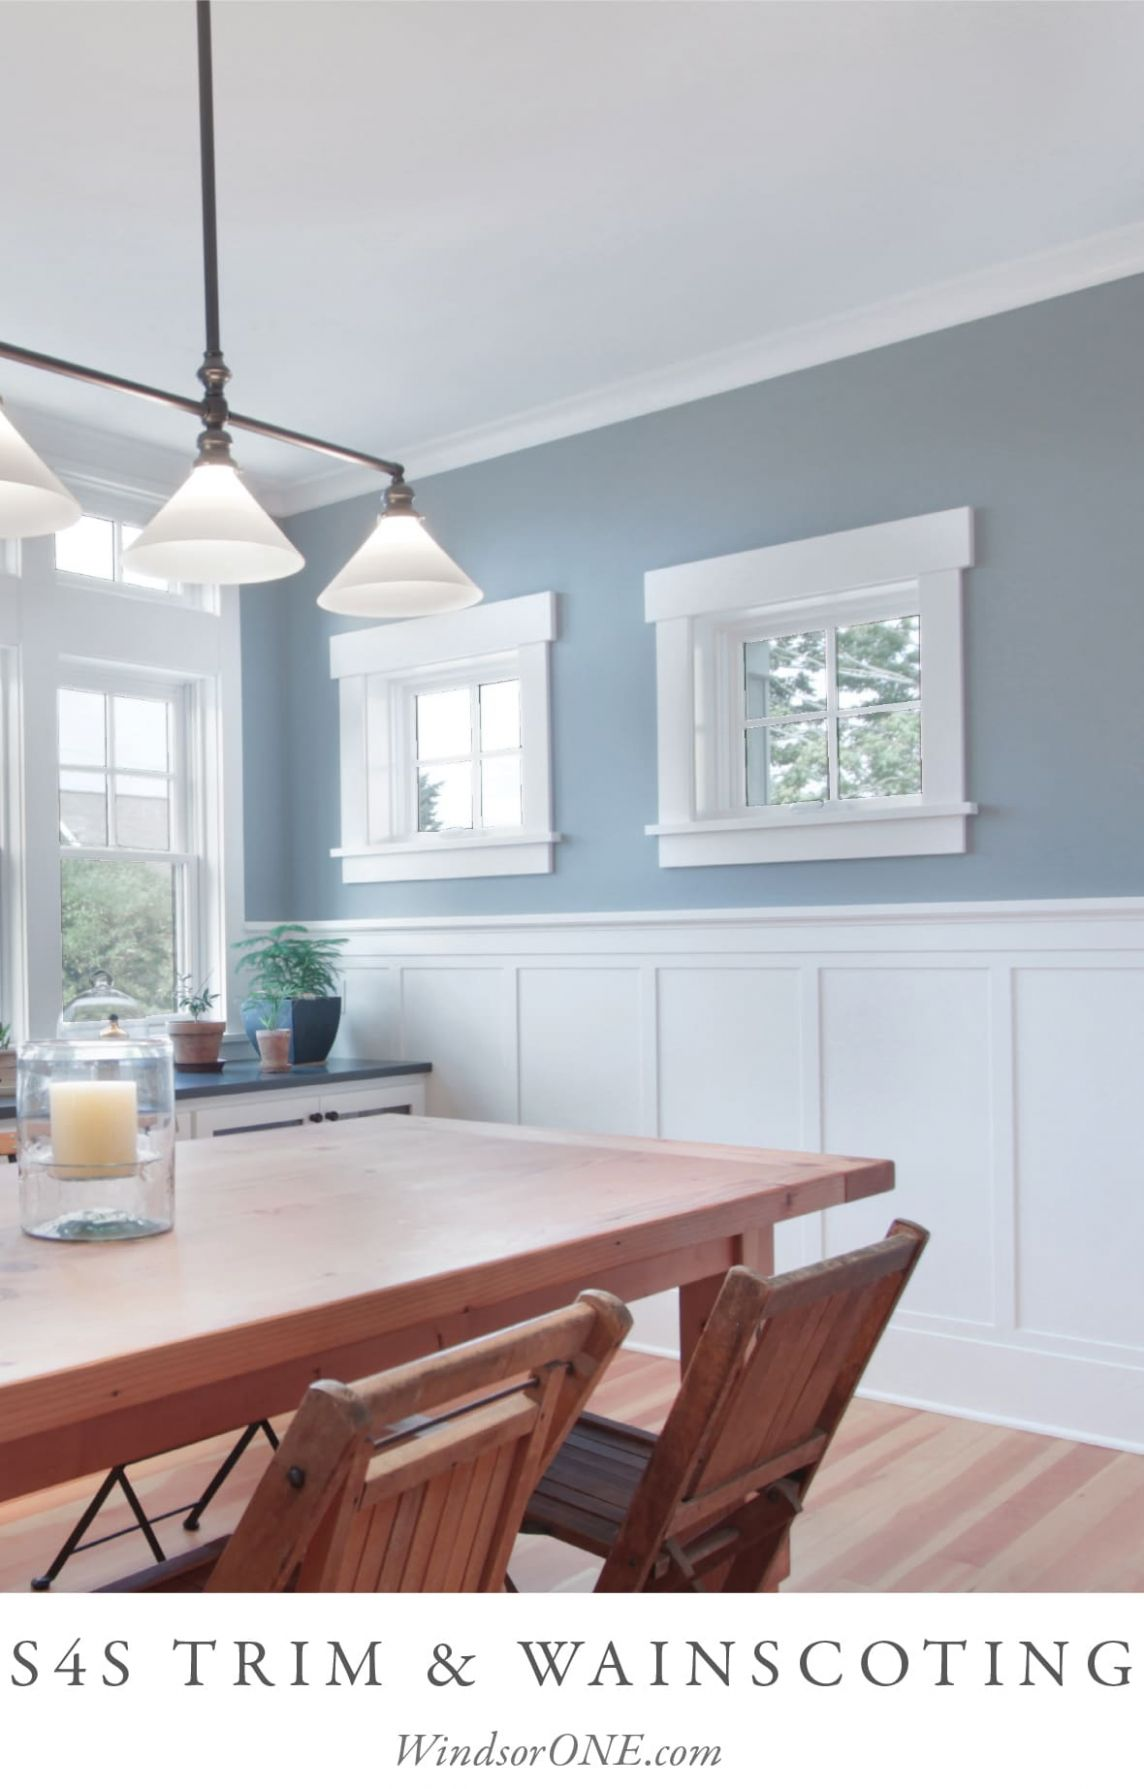 S11S WAINSCOTING AND TRIM - WindsorONE - dining room trim ideas